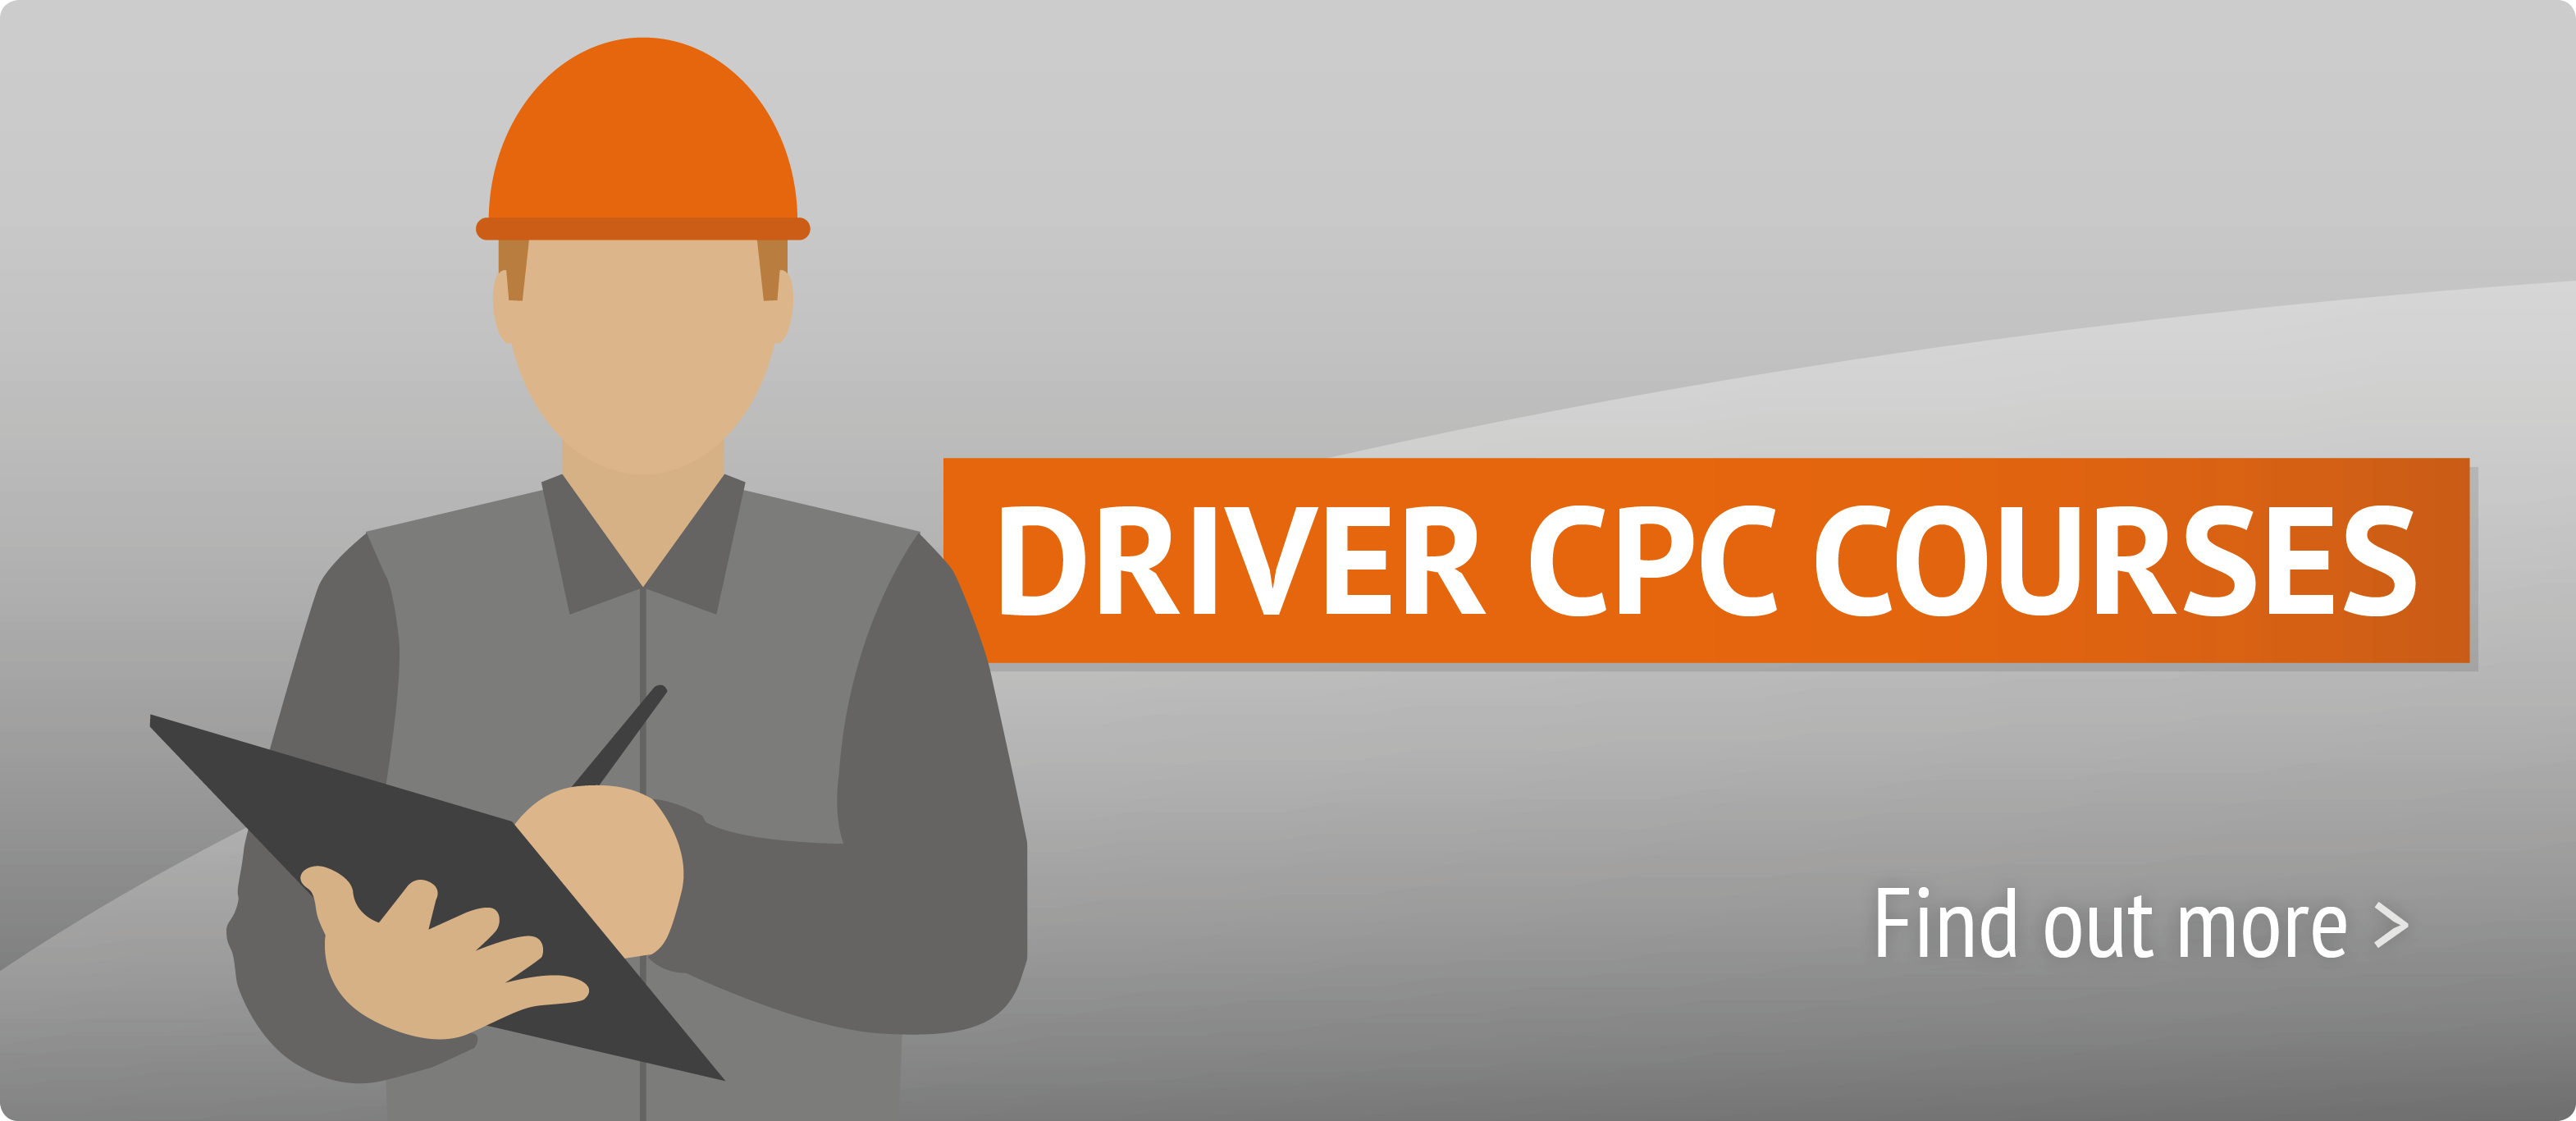 Driver CPC Courses from Bella Access